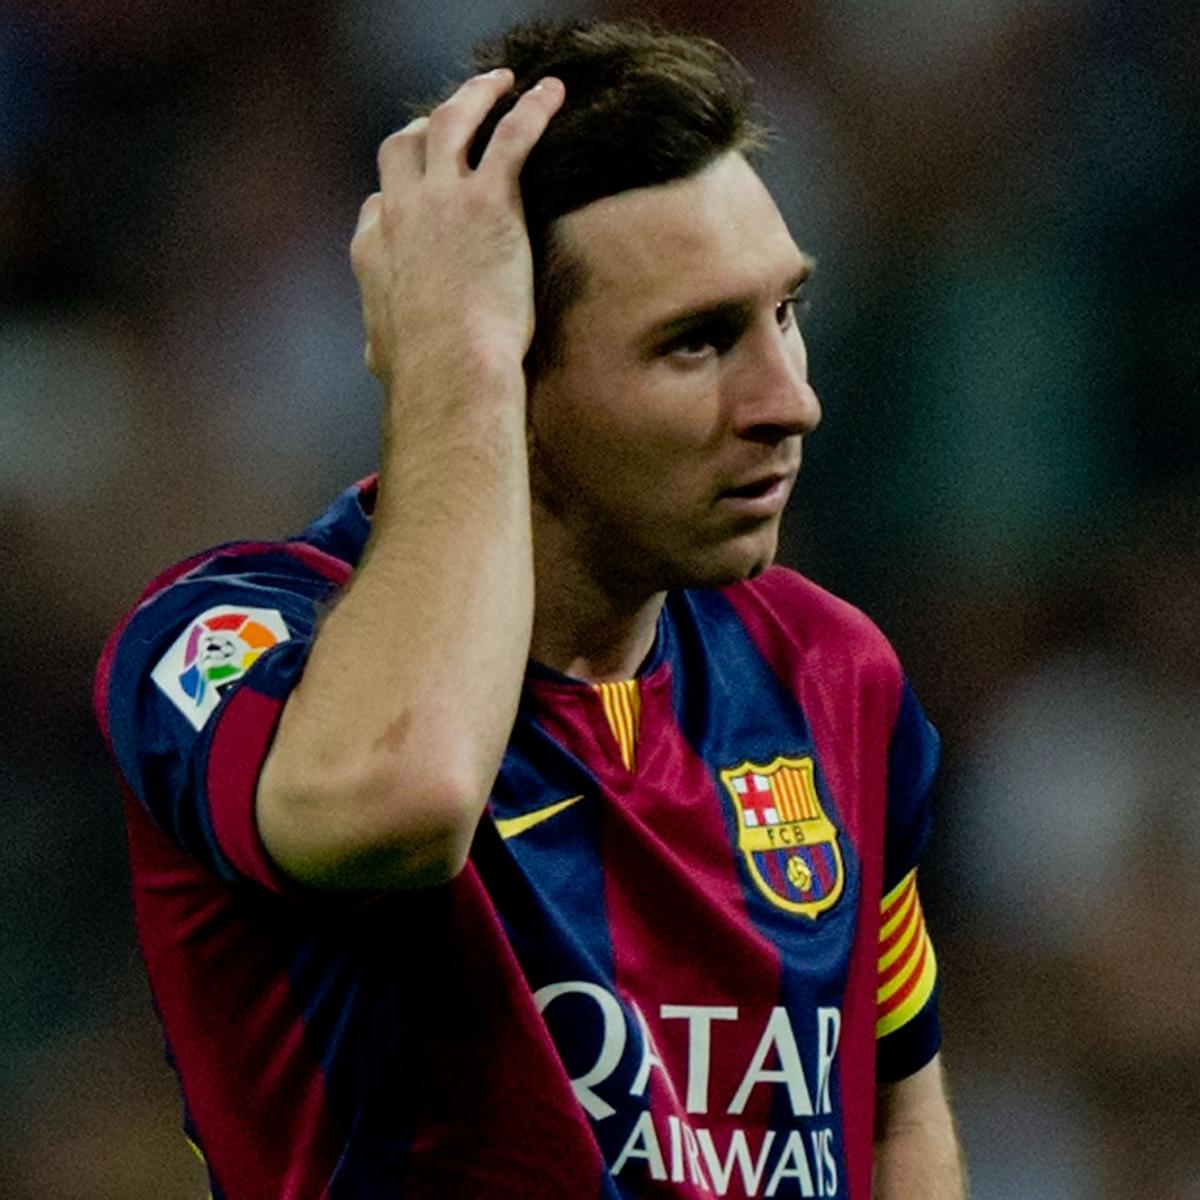 Lionel Messi A Look At The Barcelona Star S Sensational: Lionel Messi, Neymar And Barcelona Stars Are Bored, Claims